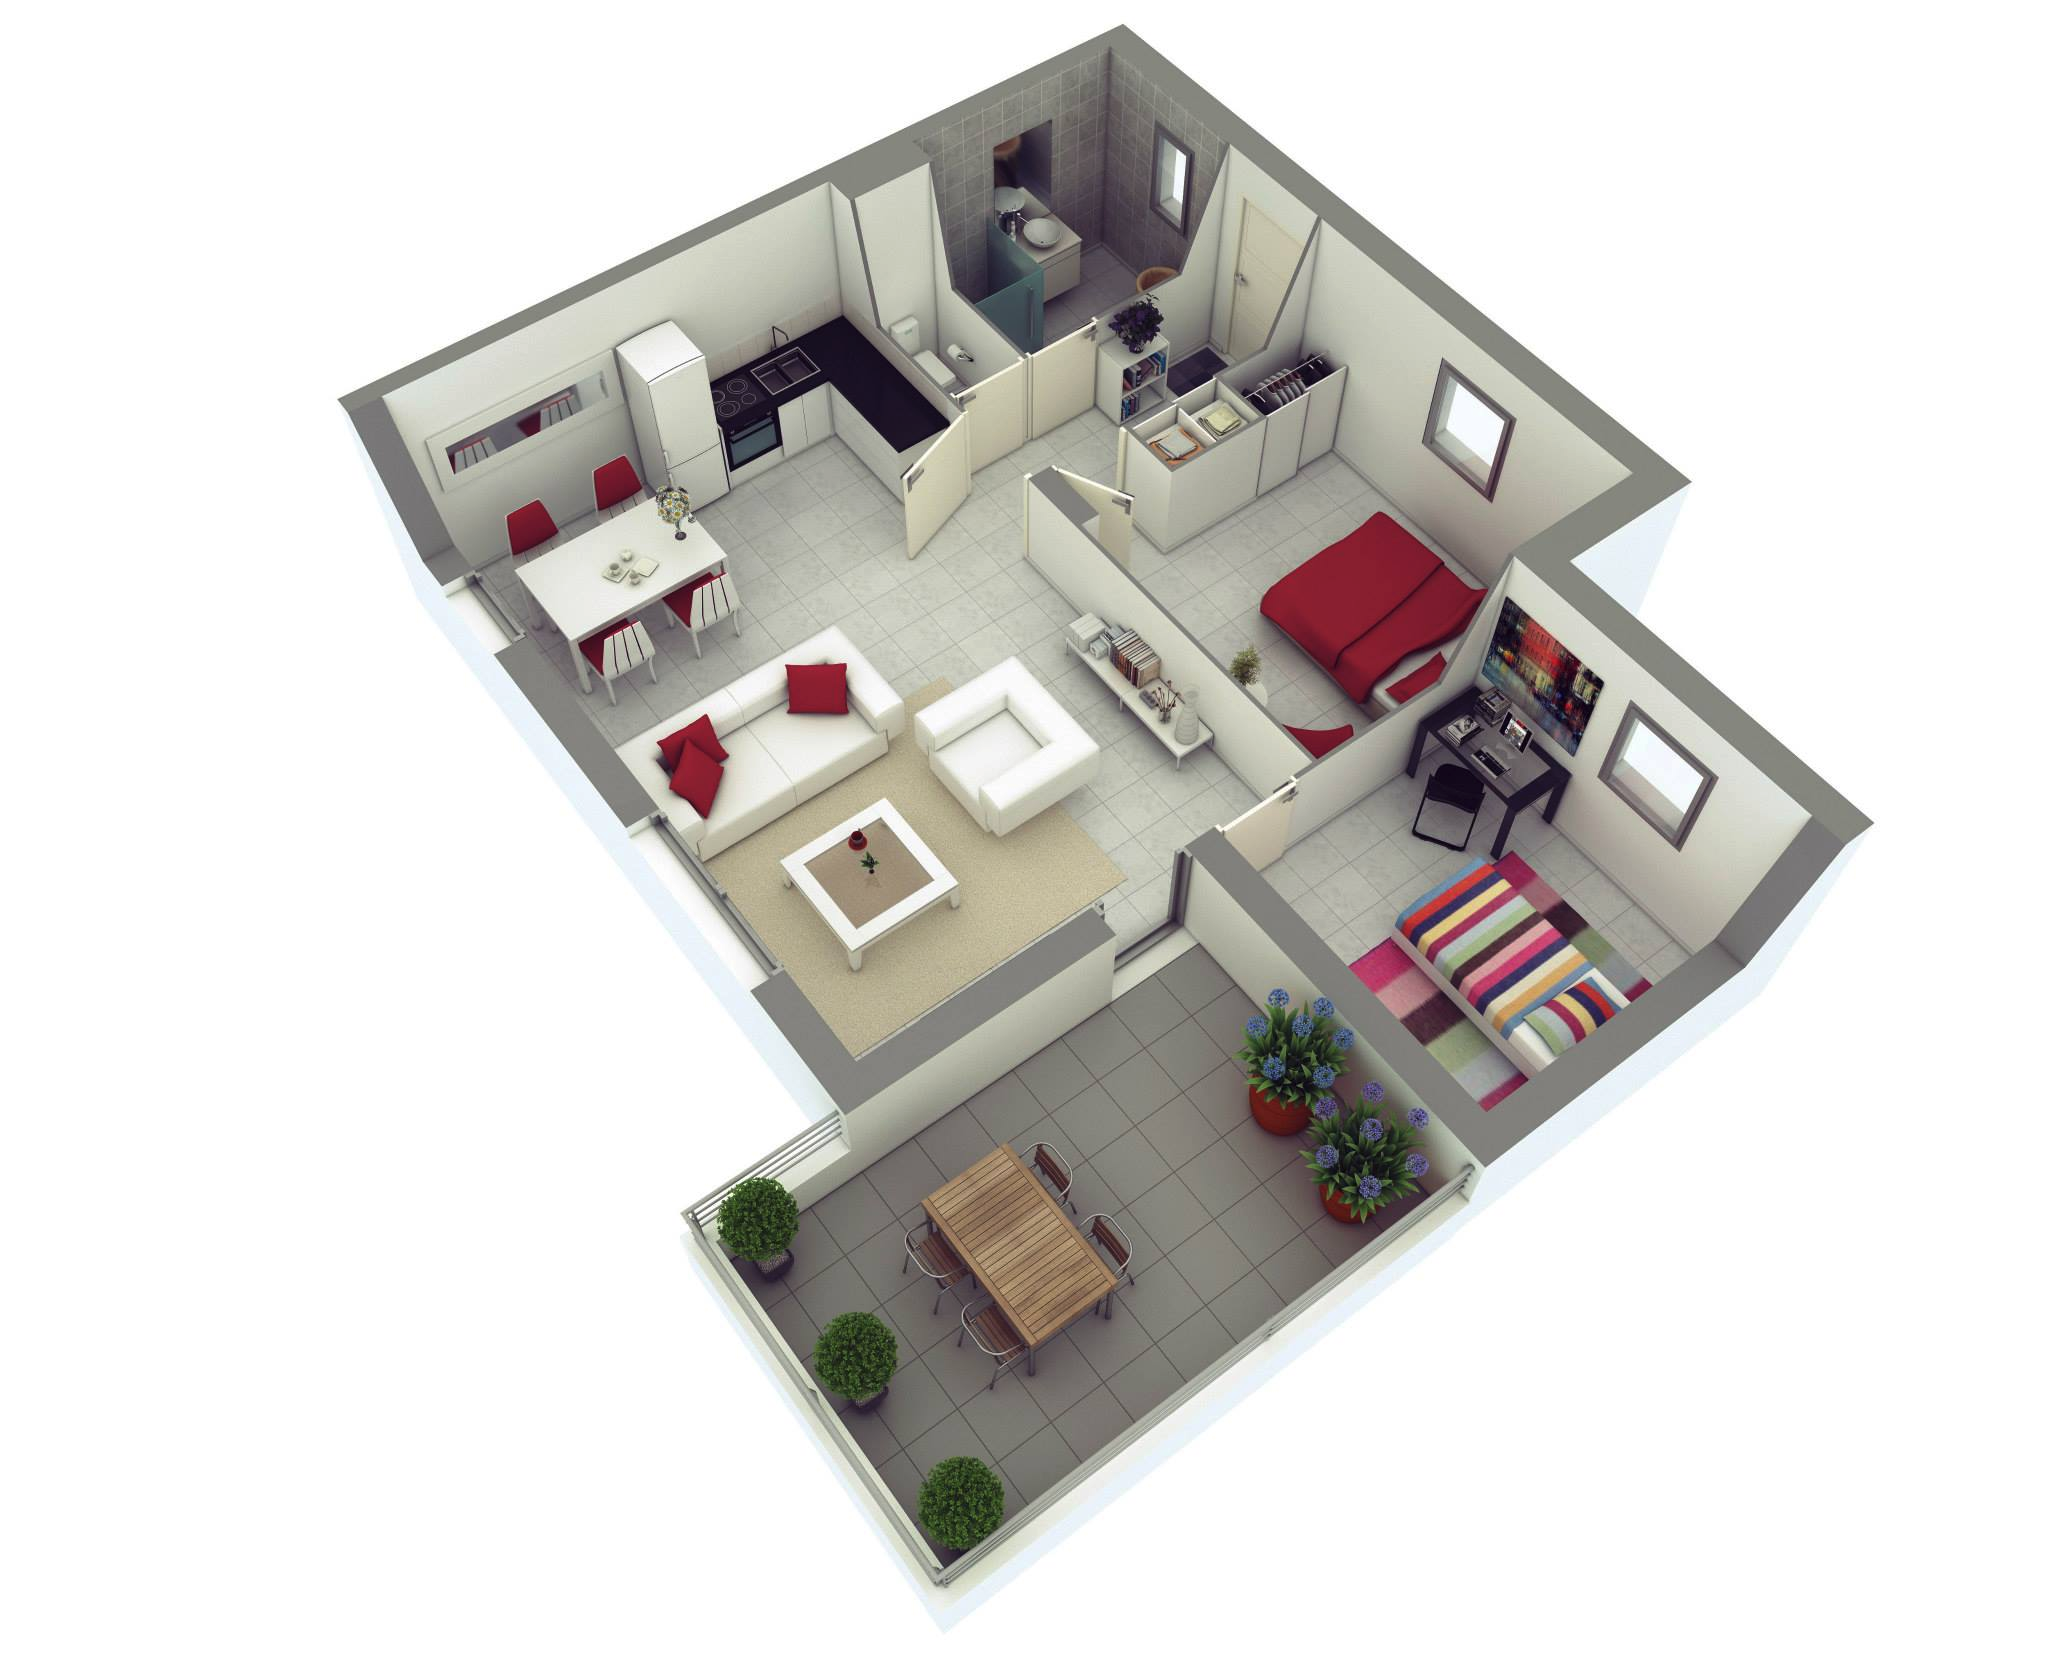 25 more 2 bedroom 3d floor plans - Simple House Plan With 2 Bedrooms 3d